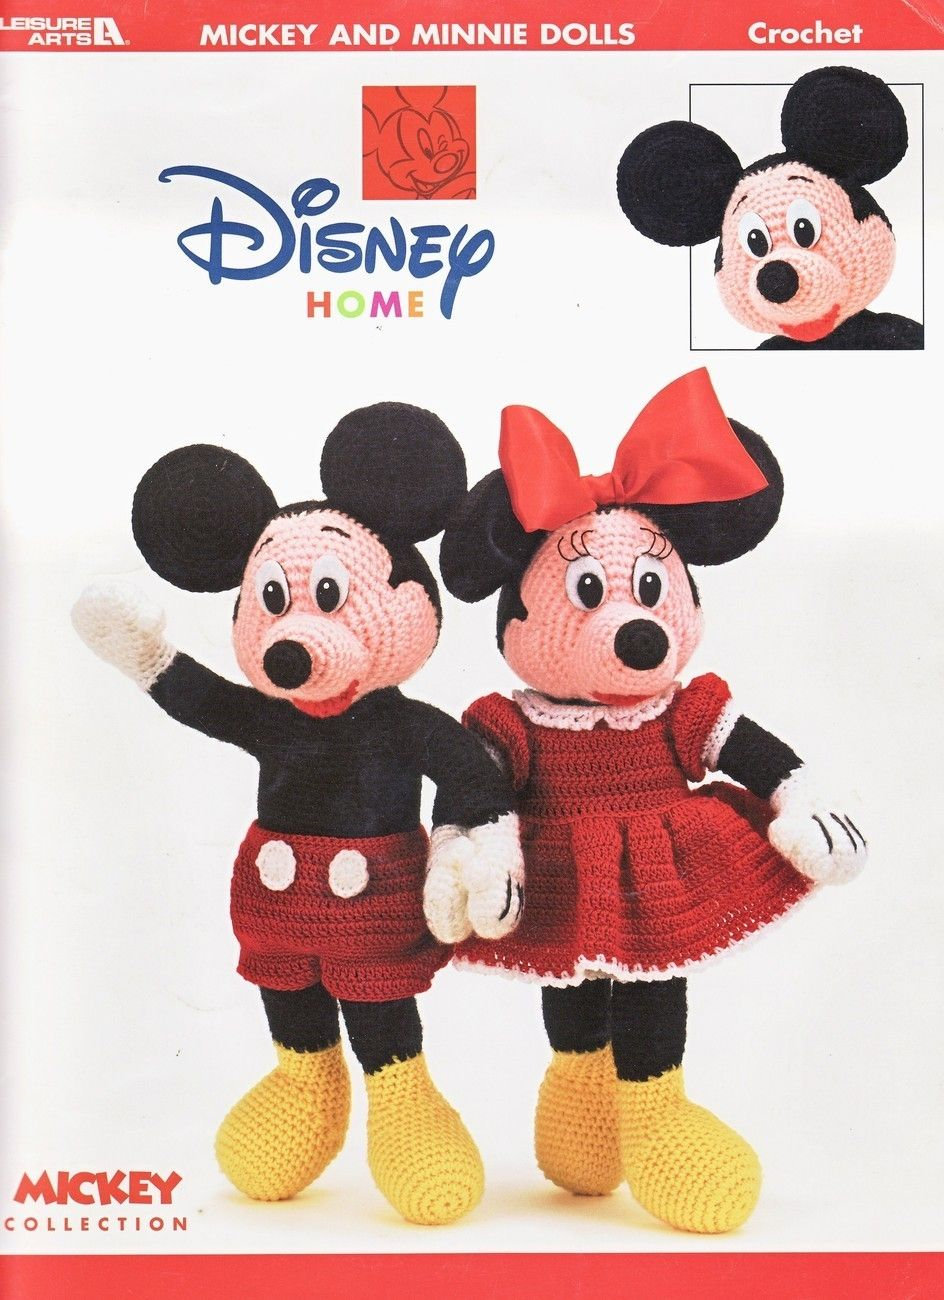 Mickey minnie dolls crochet patterns book disney mouse toys soft mickey minnie dolls crochet patterns book disney mouse toys soft sculpture bankloansurffo Choice Image